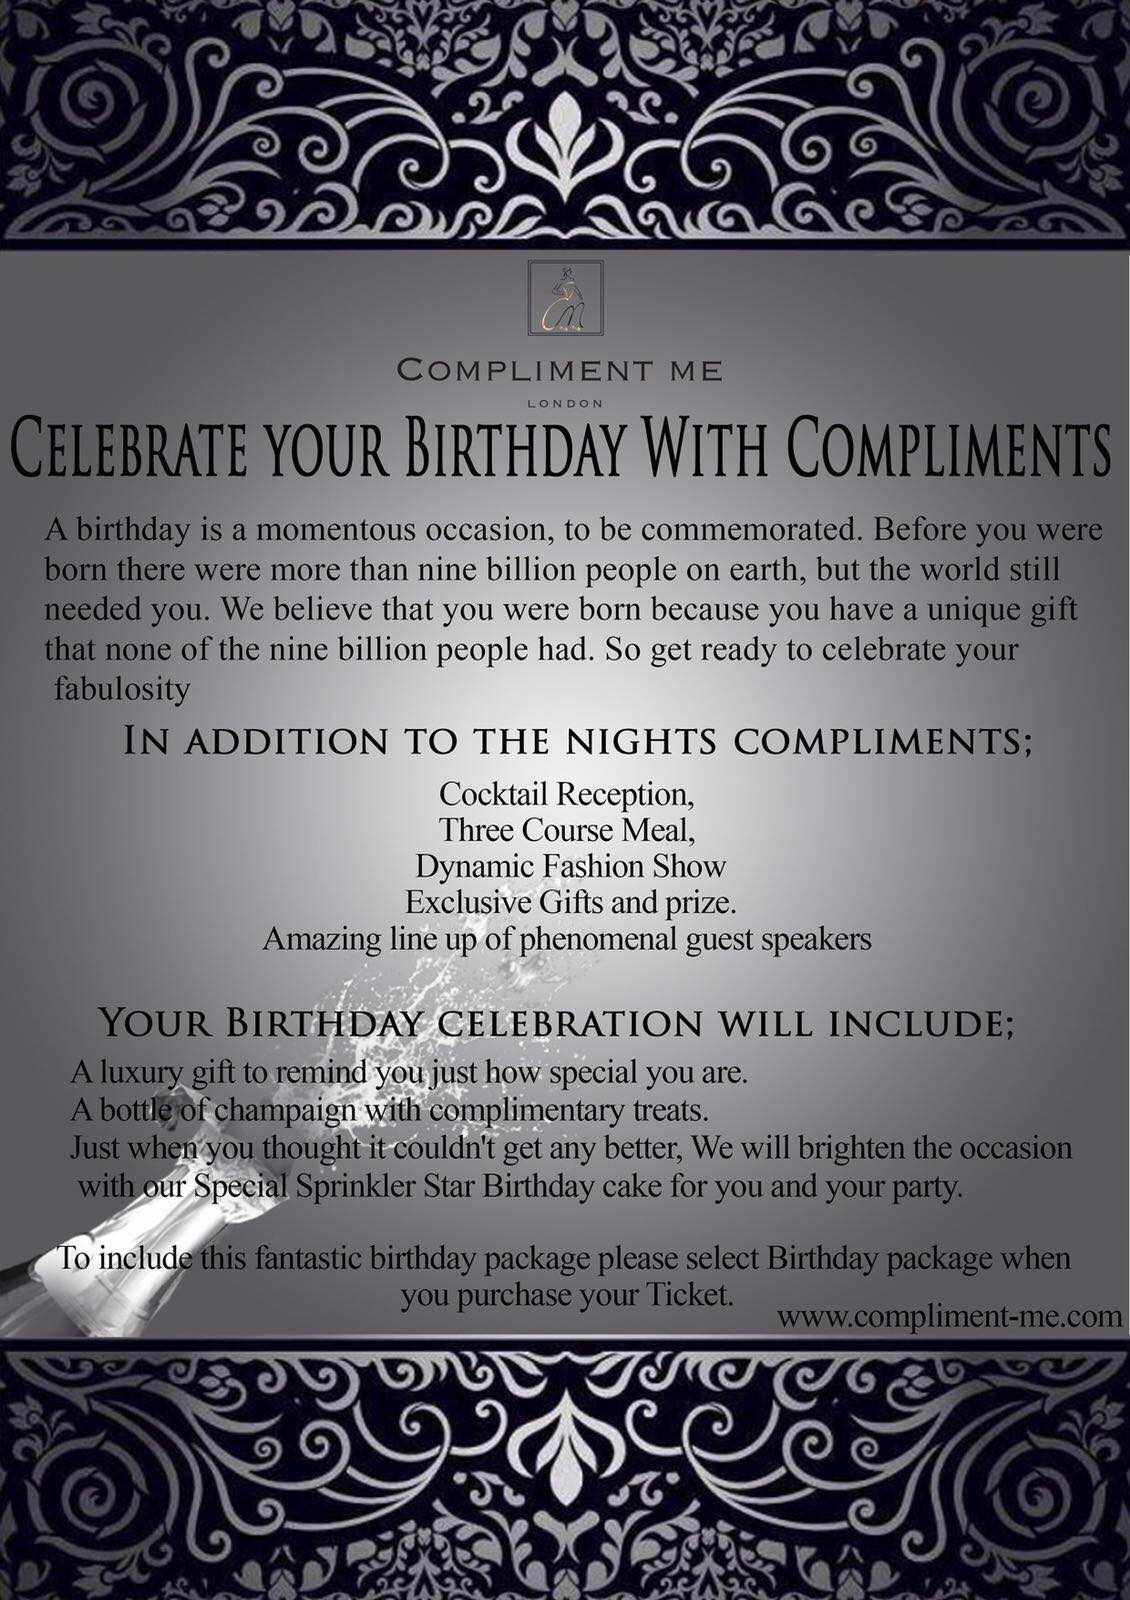 Compliment Me - Birthday Package